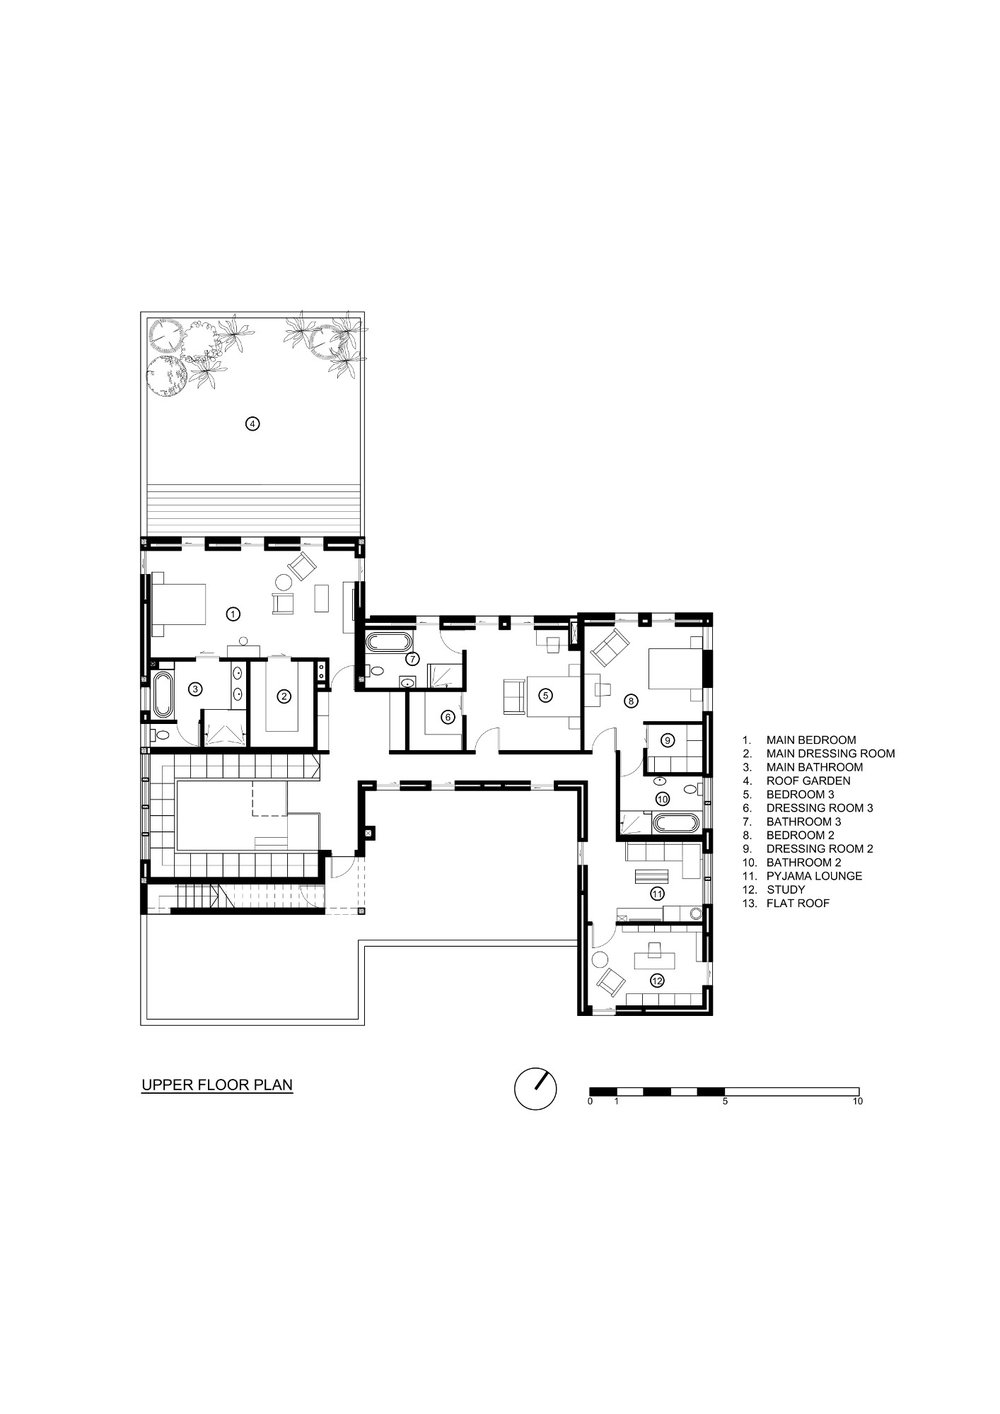 UPPER FLOOR PLAN small.jpg